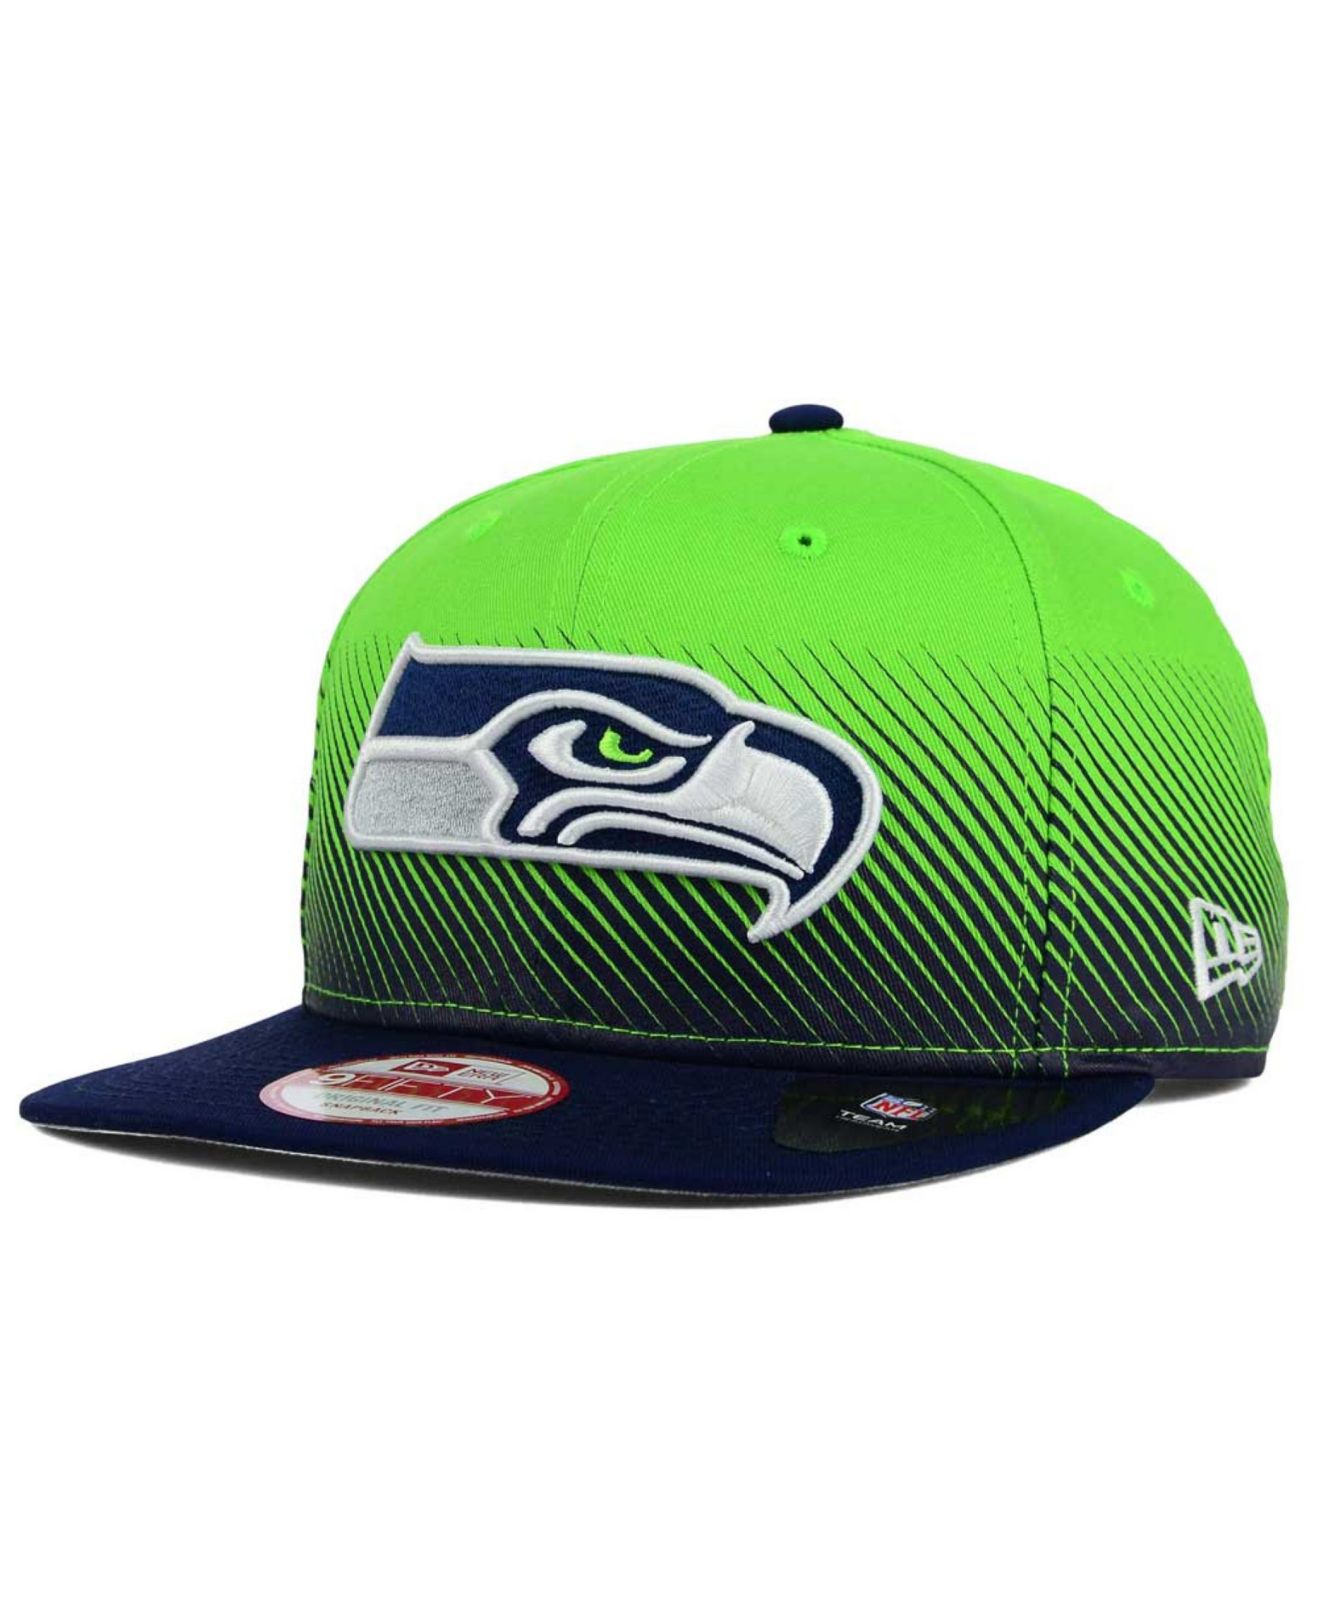 new style 41767 a99dc ... cheap lyst ktz seattle seahawks line fade 9fifty snapback cap in green  49f7b 9e7b4